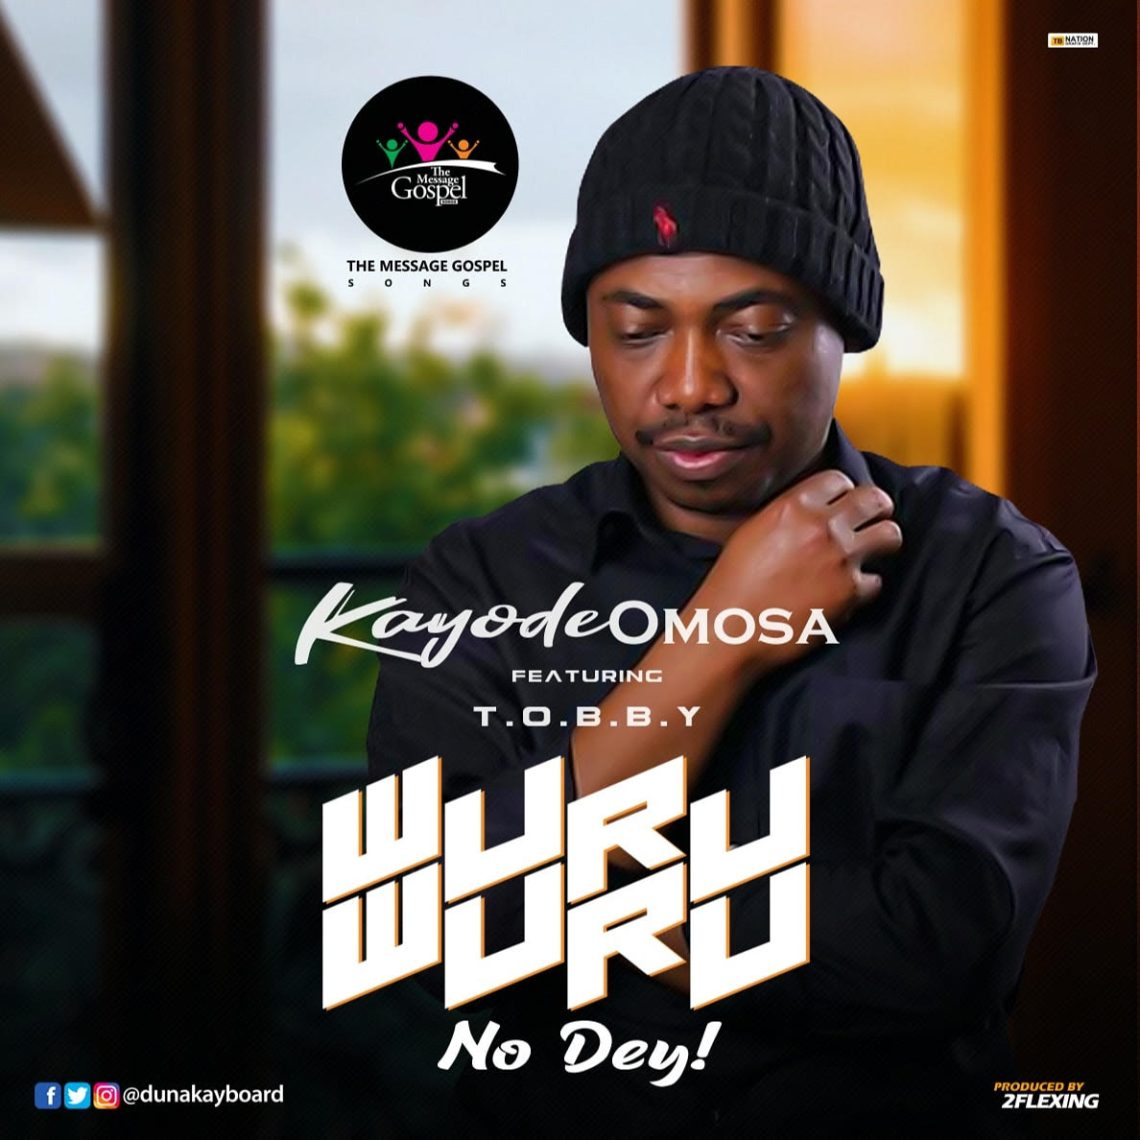 "Tooxclusive | Download Nigerian Songs & Videos ARTISTS A – Z SONGTooxclusive | Download Nigerian Songs & Videos ARTISTS A – Z SONGS Tooxclusive | Download Nigerian Songs & Videos ARTISTS A – Z SONGS A – Z NEWS EDITIORIAL VIDEOS ADVERTISE CONTACT US Kayode Omosa – ""Wuru Wuru No Dey"" ft. TobbyA – Z NEWS EDITIORIAL VIDEOS ADVERTISE CONTACT US Kayode Omosa – ""Wuru Wuru No Dey"" ft. TobbyS A – Z NEWS EDITIORIAL VIDEOS ADVERTISE CONTACT US Kayode Omosa – ""Wuru Wuru No Dey"" ft. Tobby"